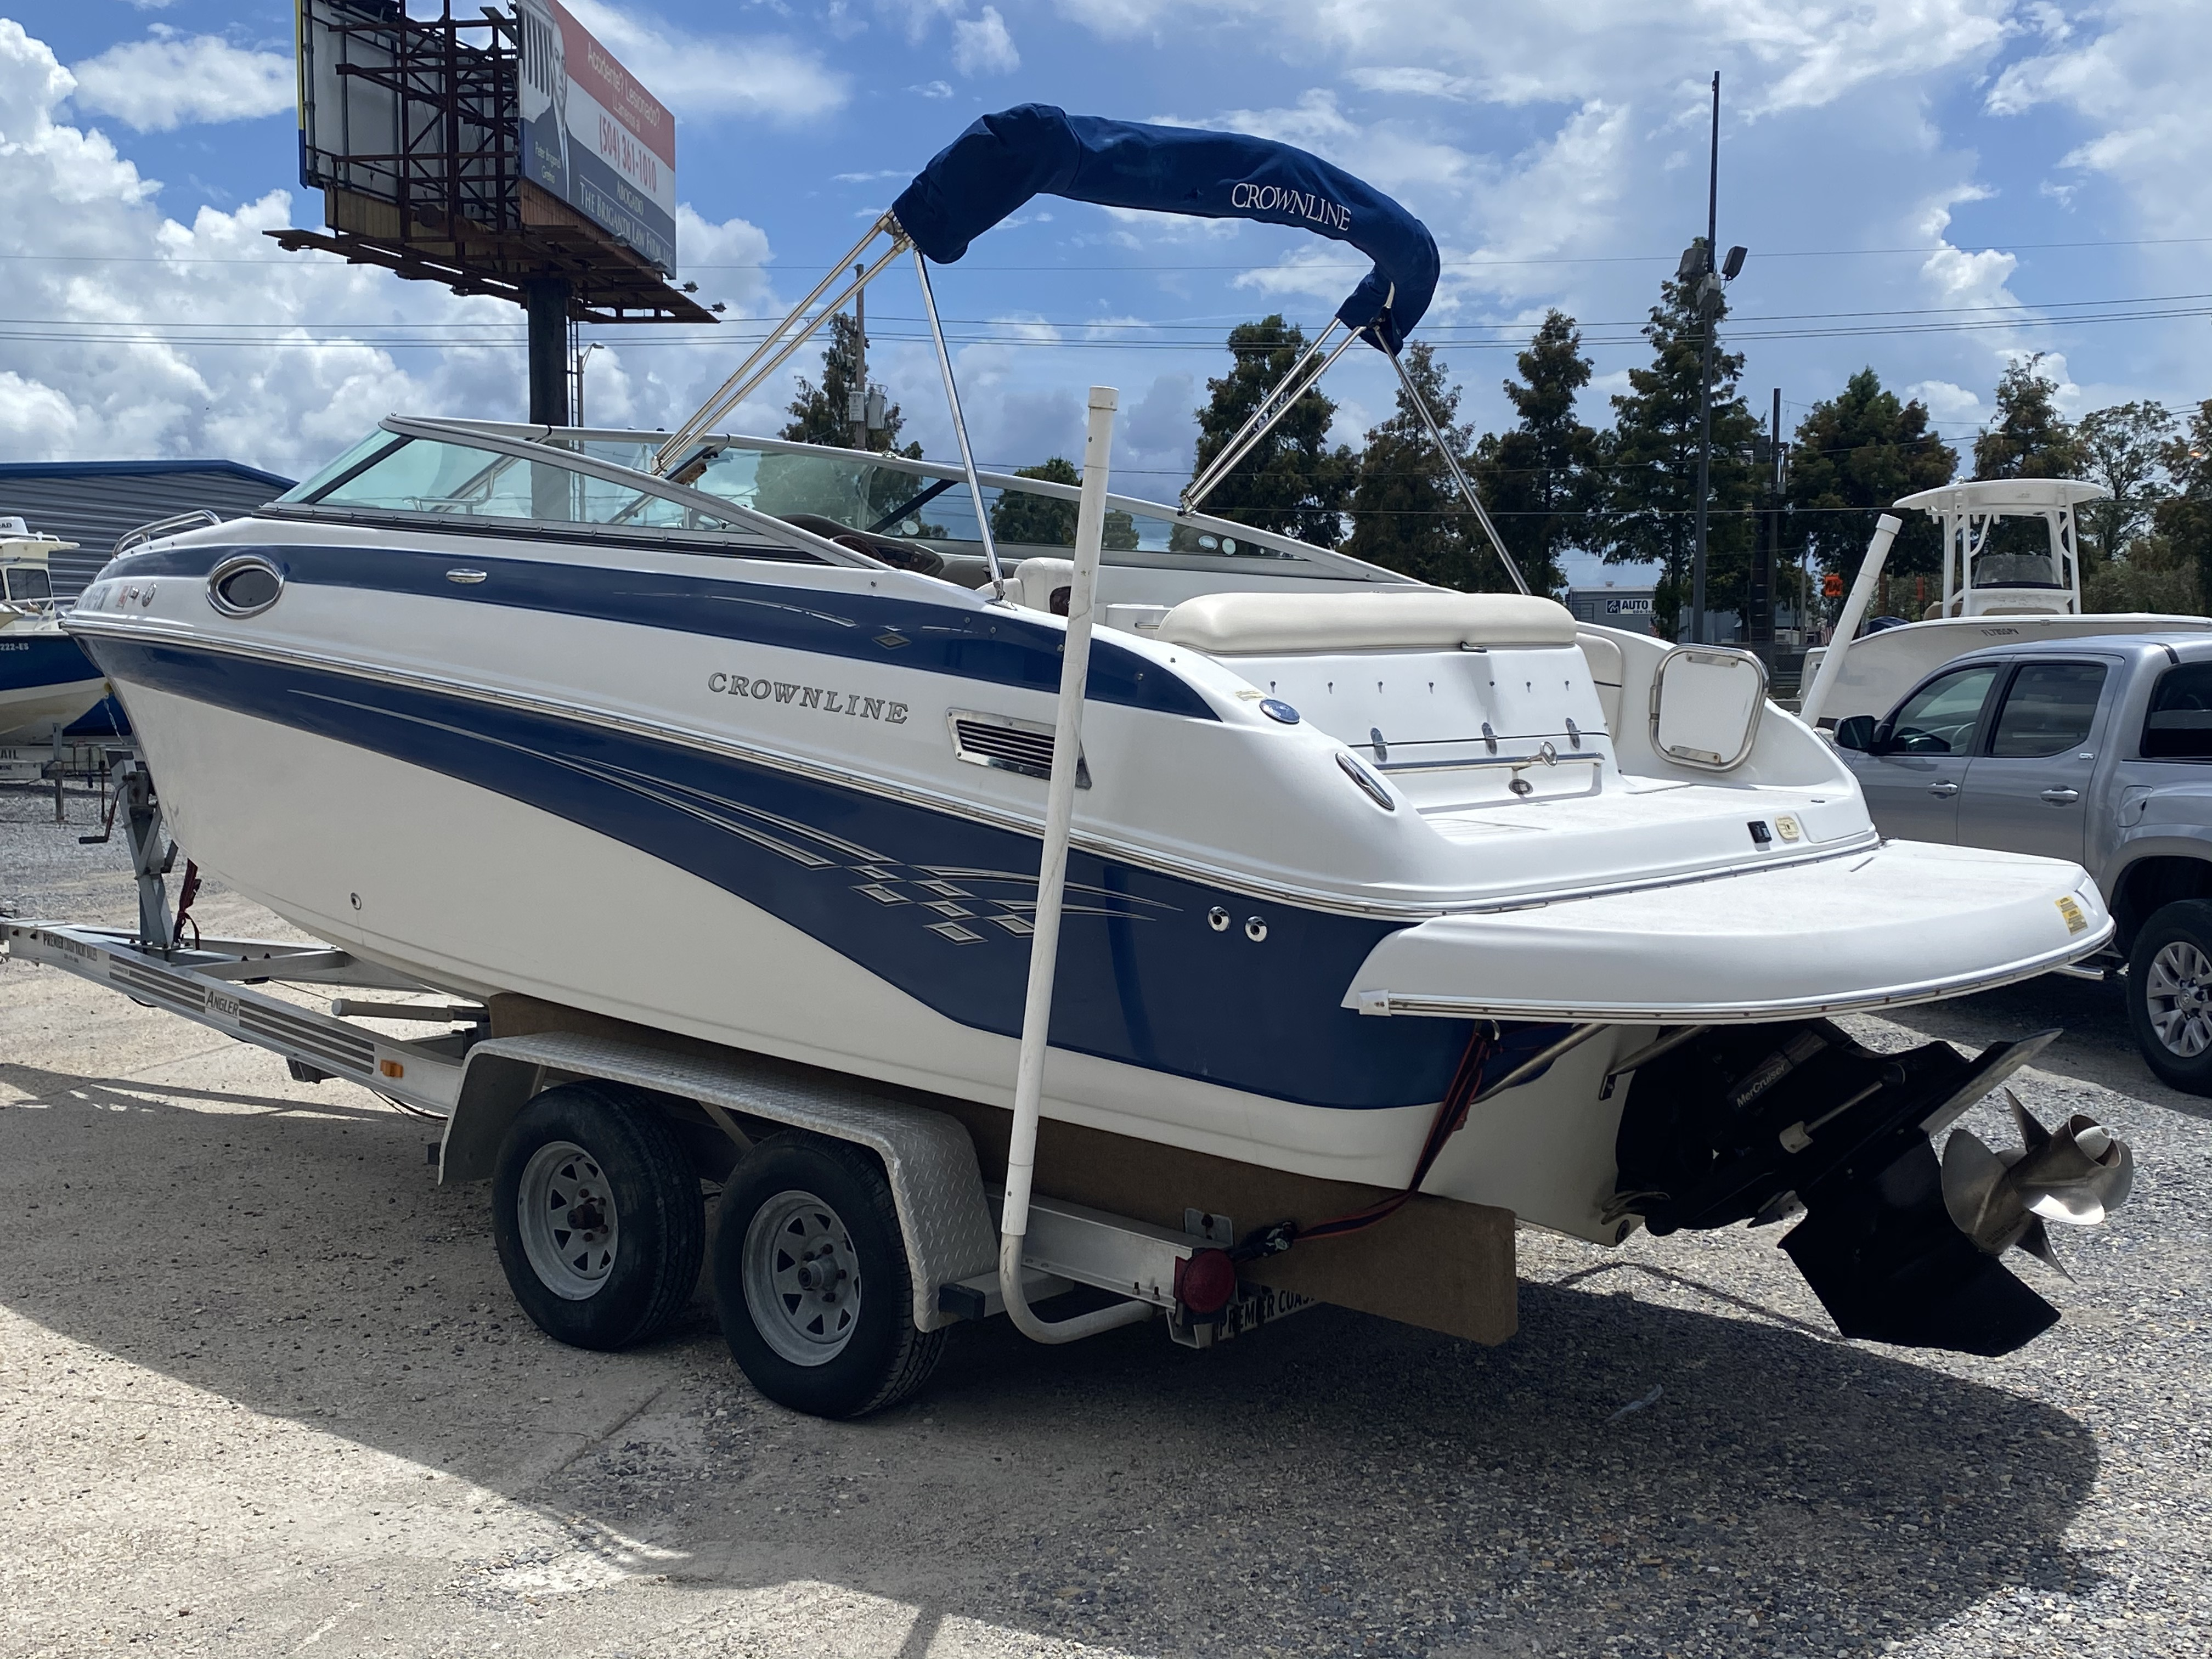 2005 Crownline boat for sale, model of the boat is 236 & Image # 11 of 17